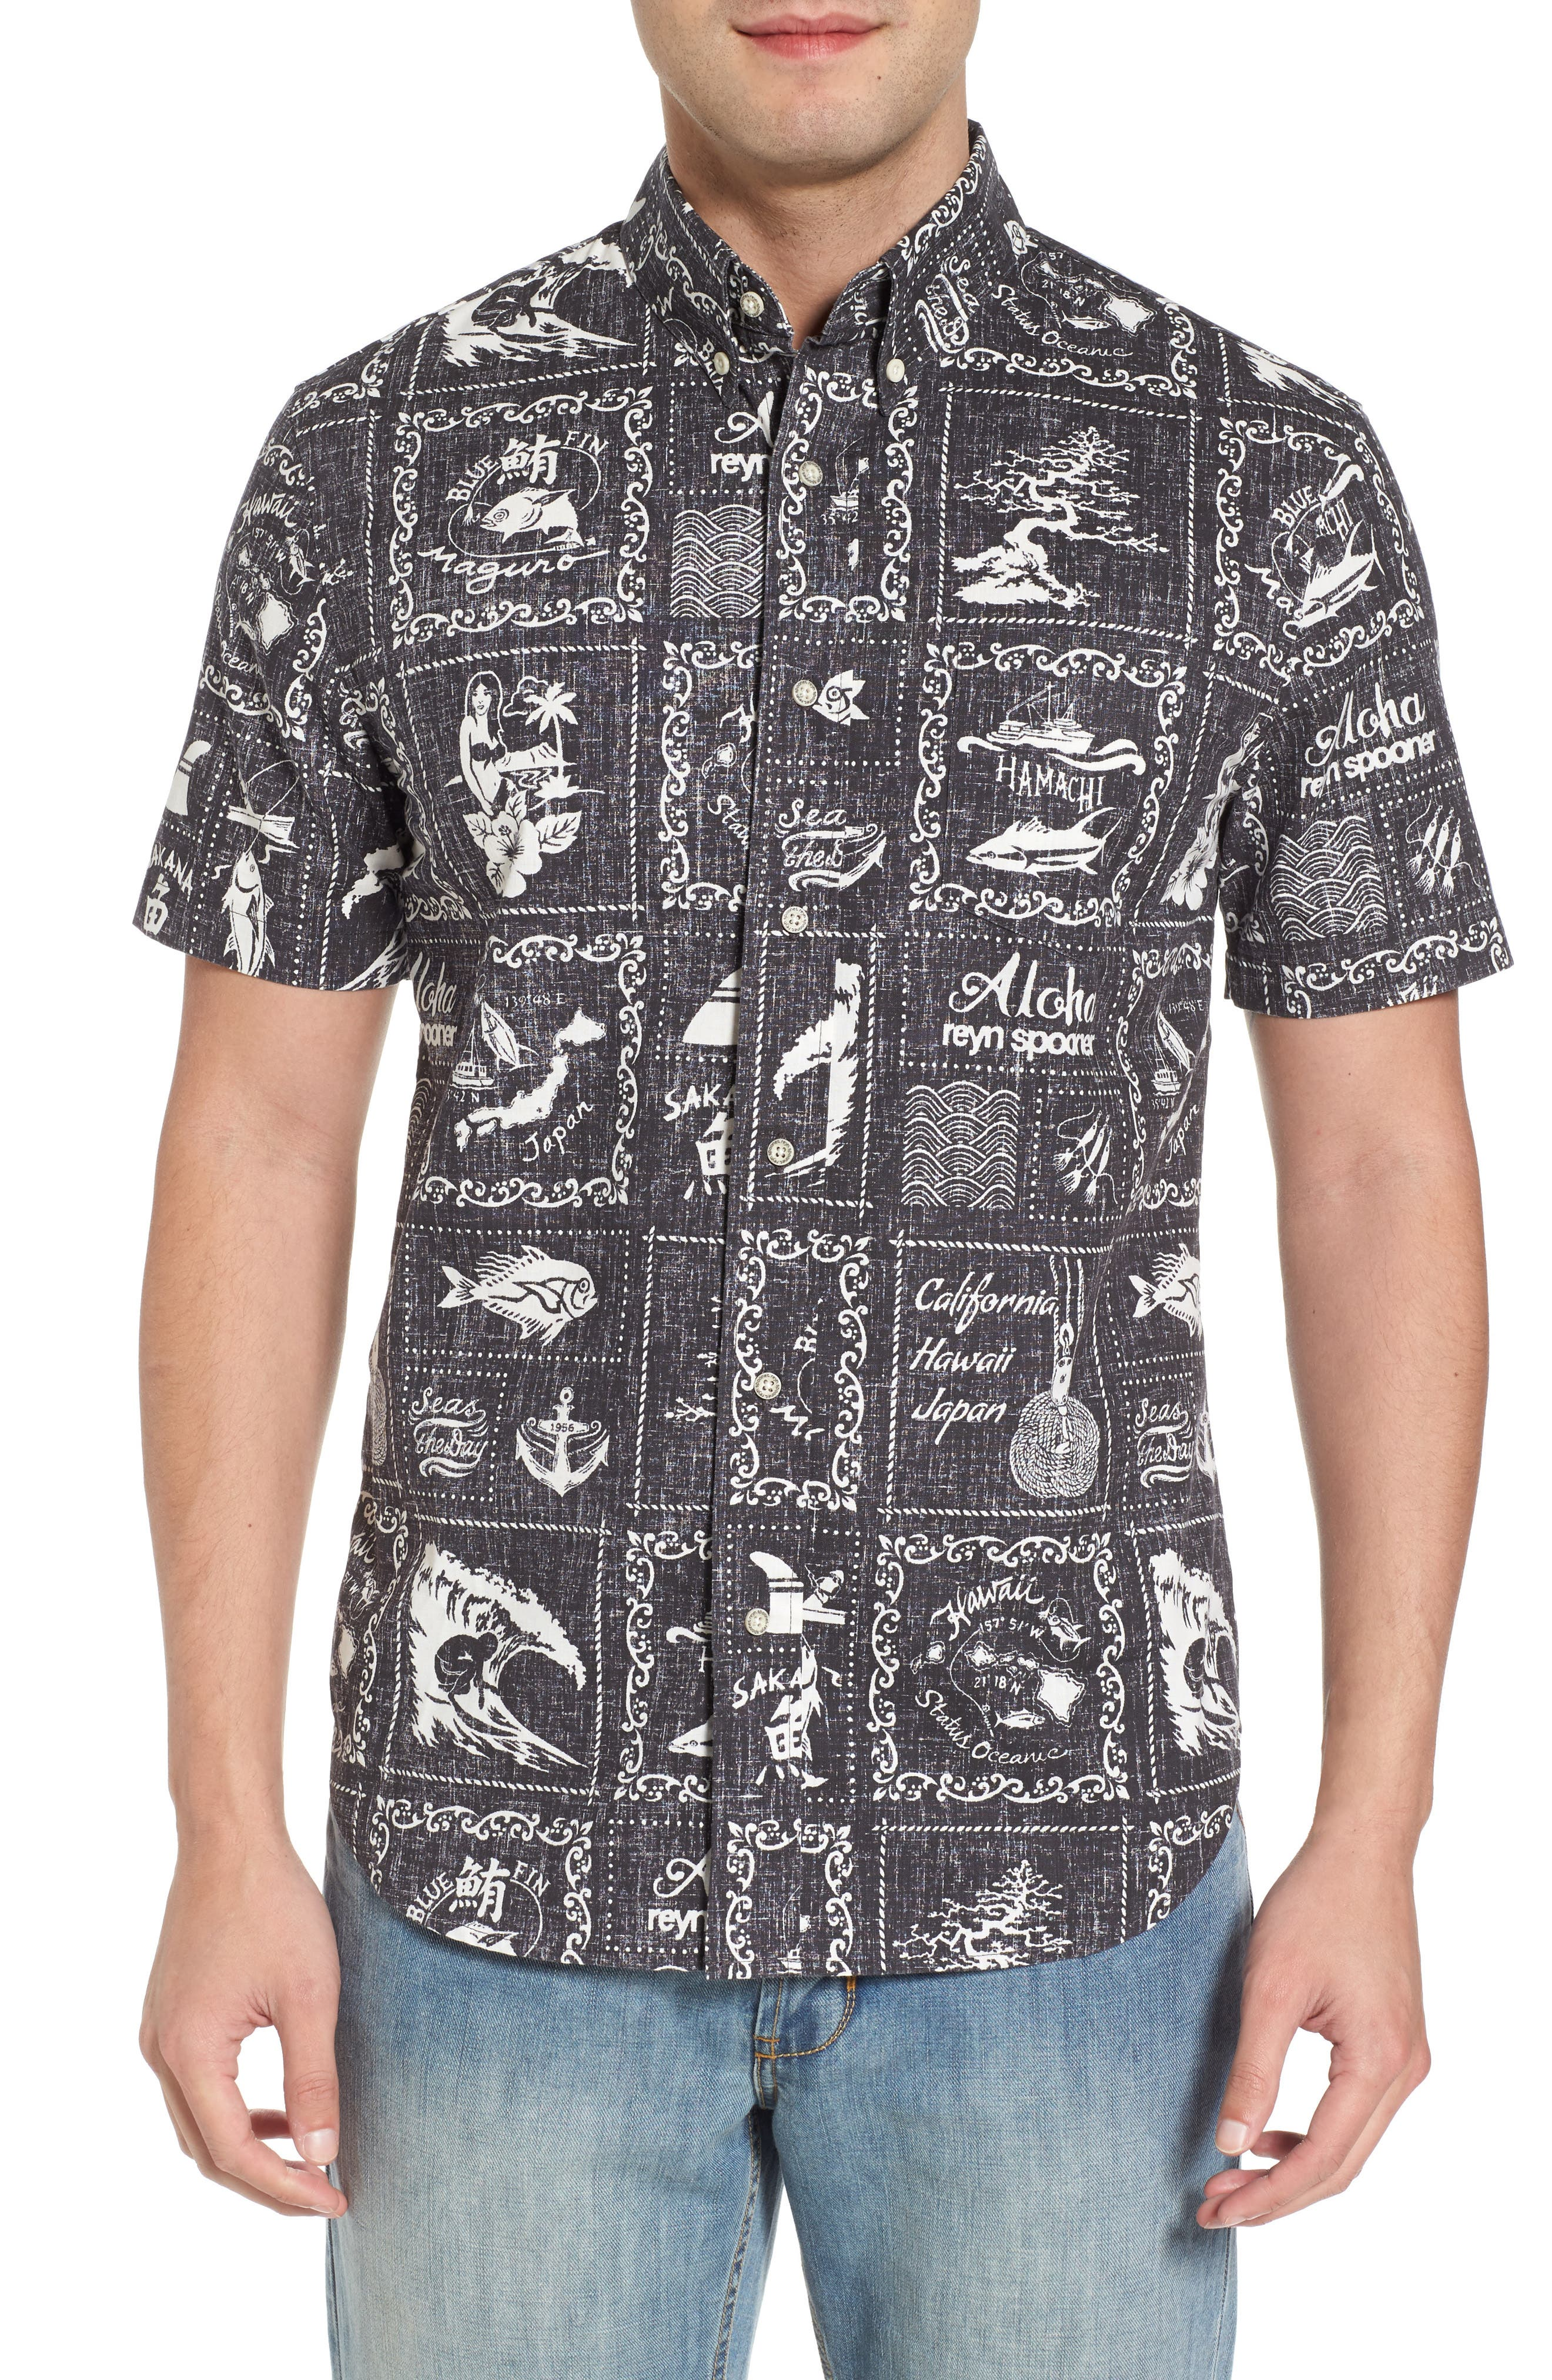 Stories from the East Regular Fit Sport Shirt,                         Main,                         color, Black